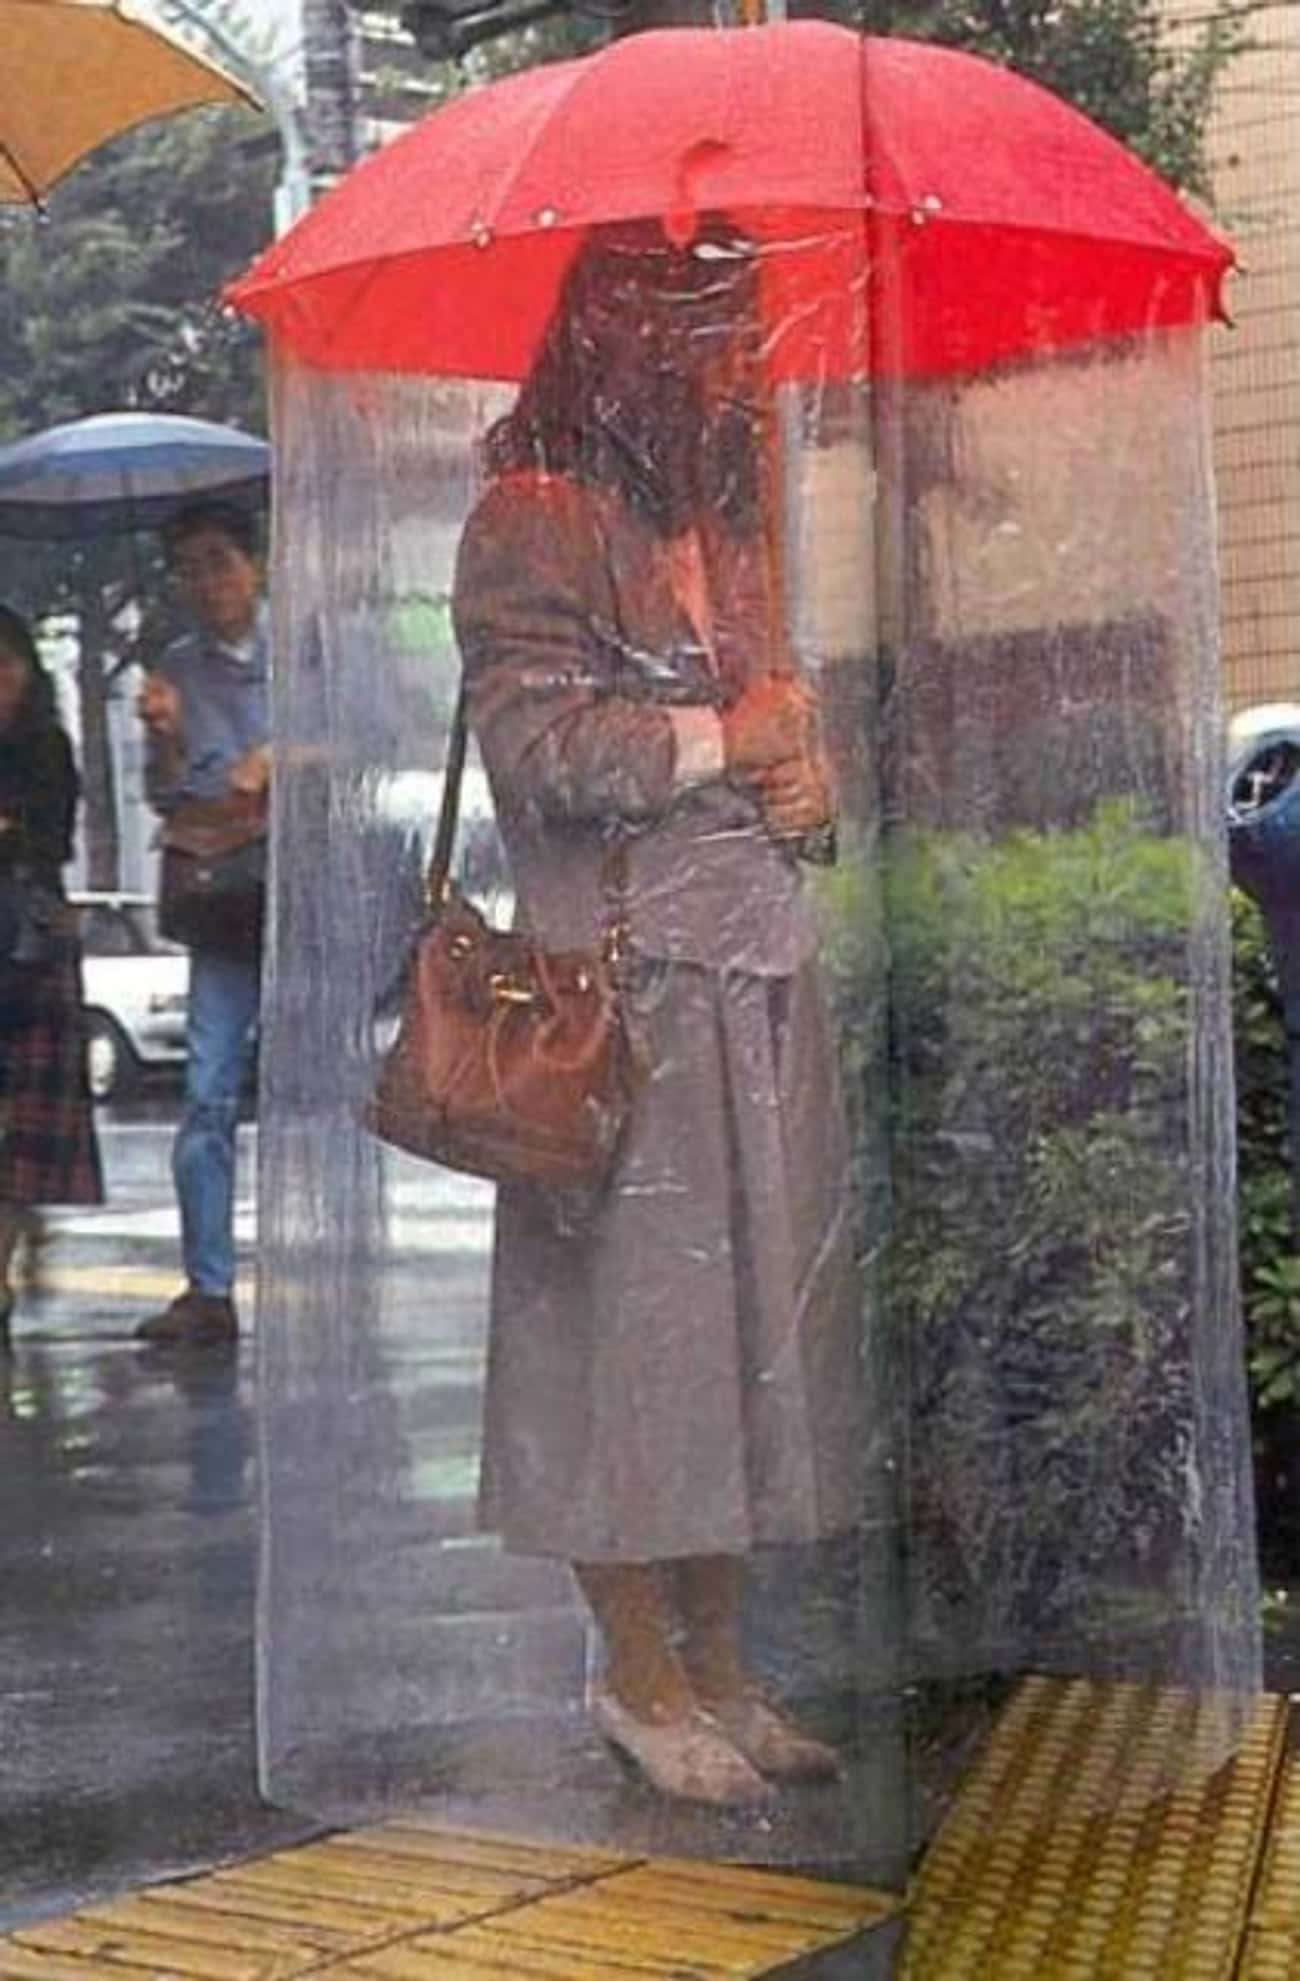 Extended Umbrella is listed (or ranked) 1 on the list 10Japanese Inventions And Gadgets That Might Be Causing More Problems Than They're Solving